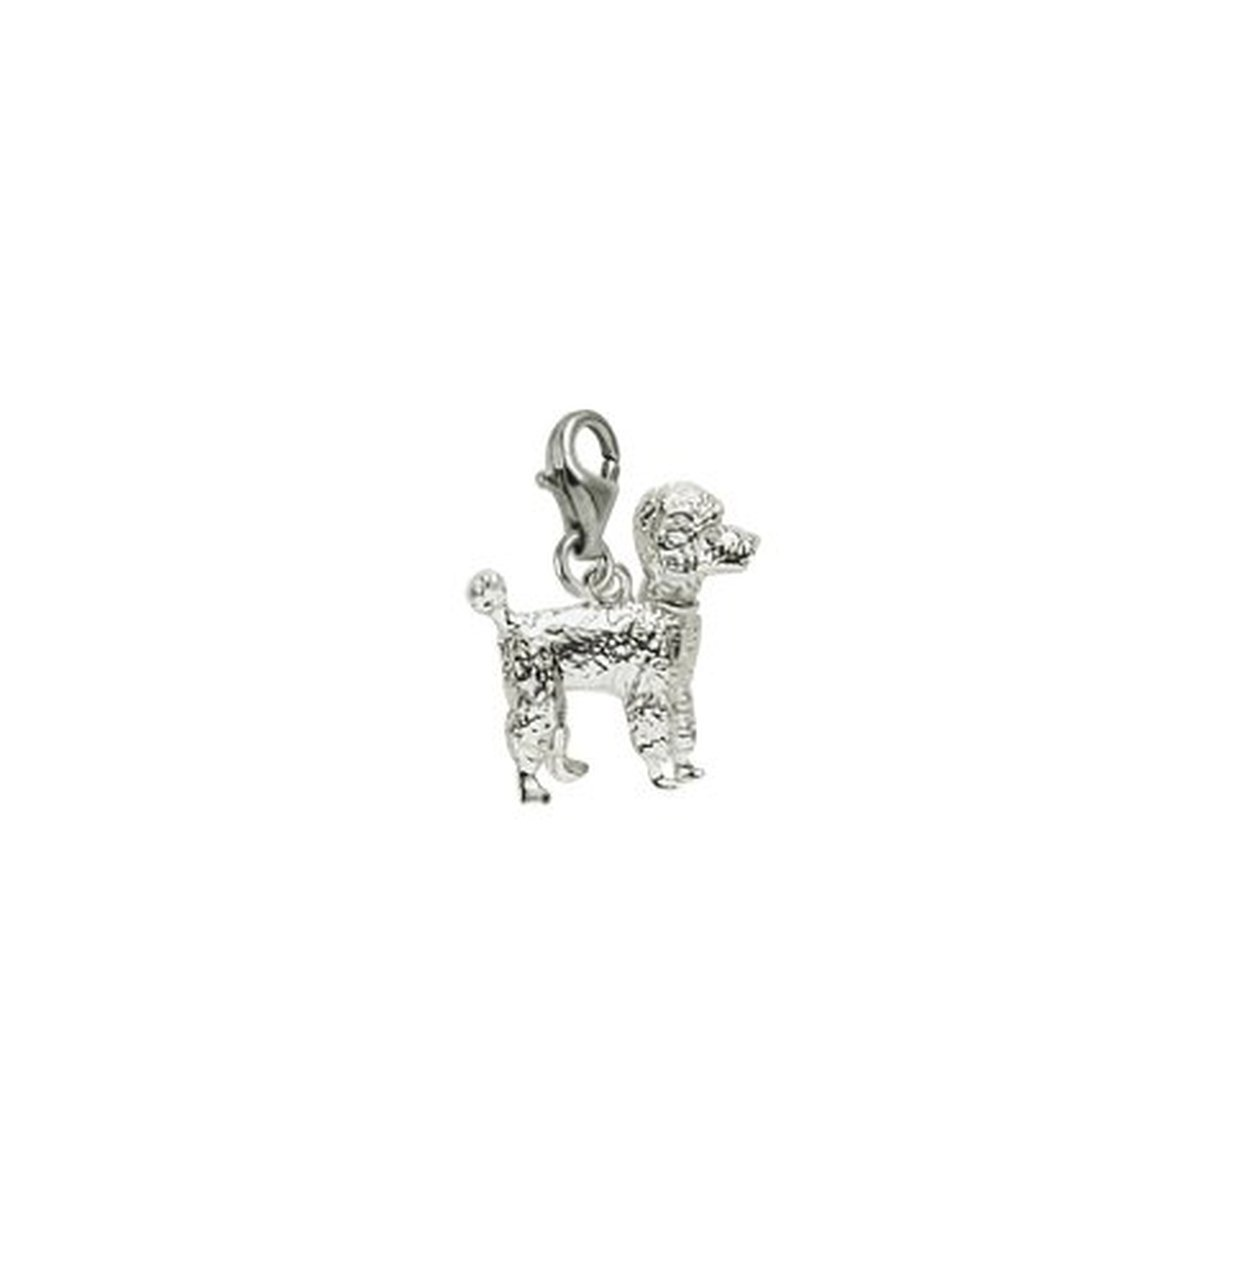 Sterling Silver Poodle Charm With Lobster Claw Clasp, Charms for Bracelets and Necklaces